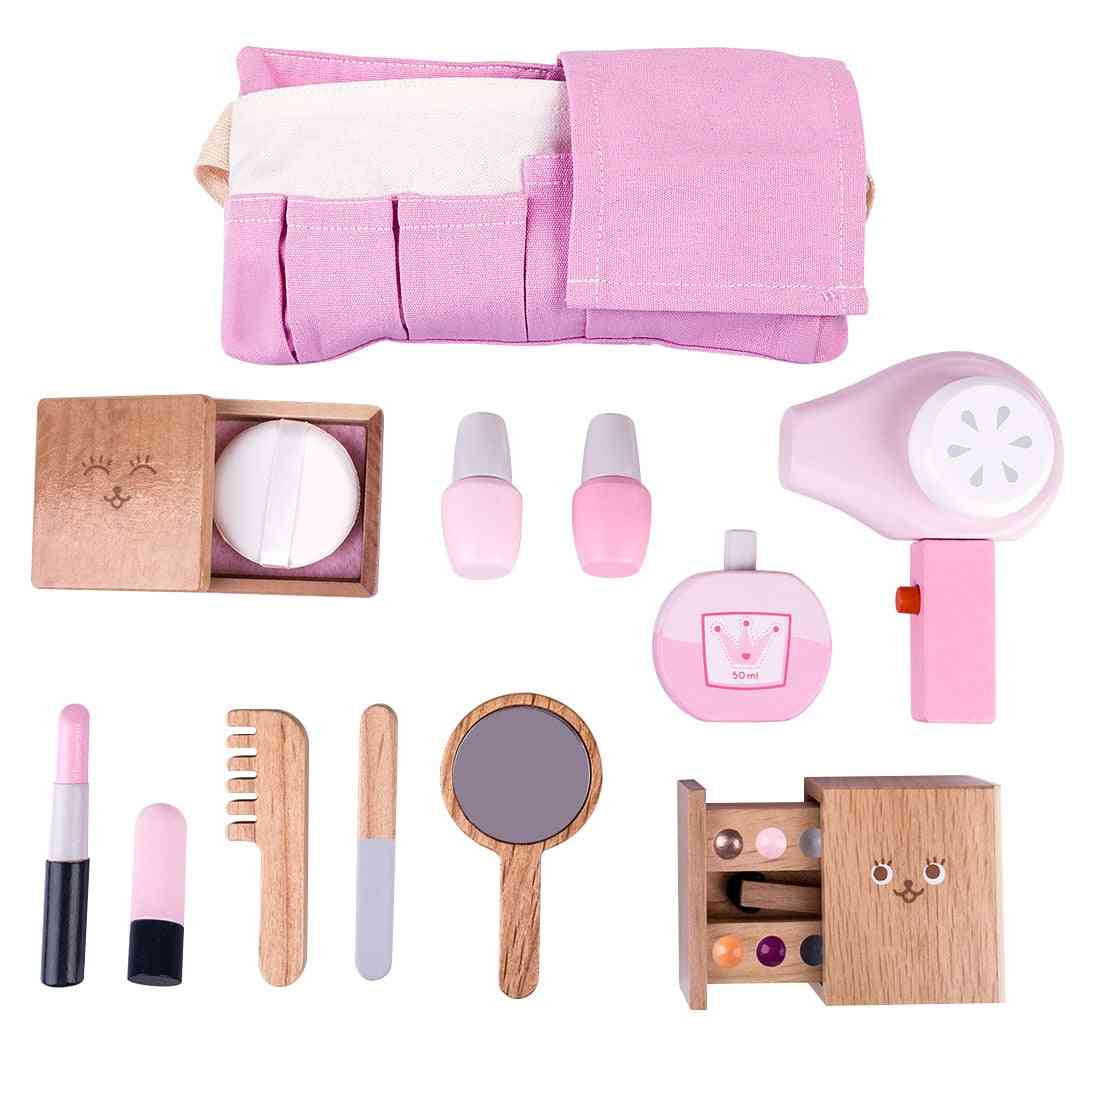 12pcs Of Wooden Makeup Pretend Play Set-simulation For